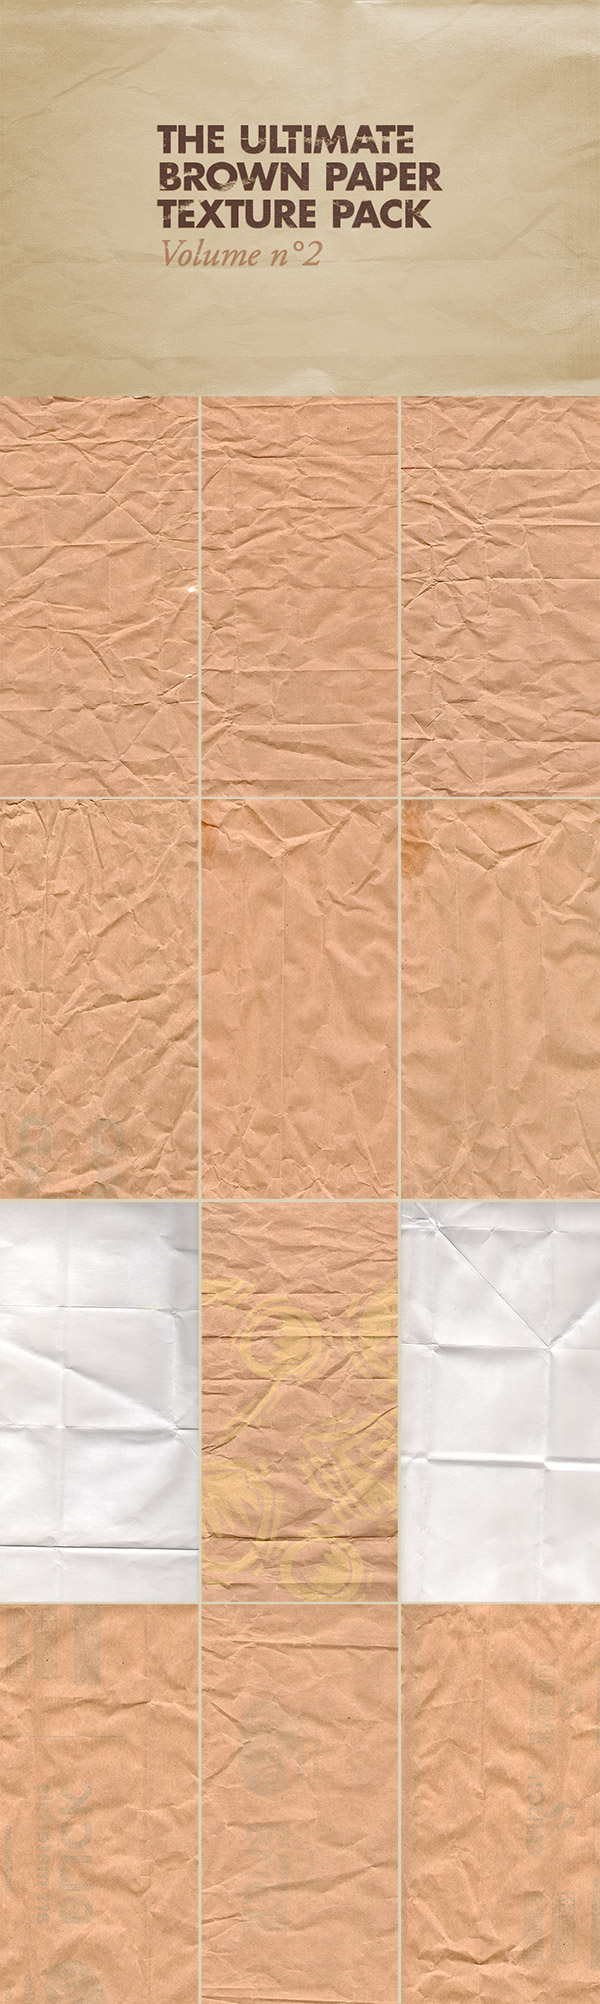 The Ultimate Brown Paper Texture Pack Volume 2